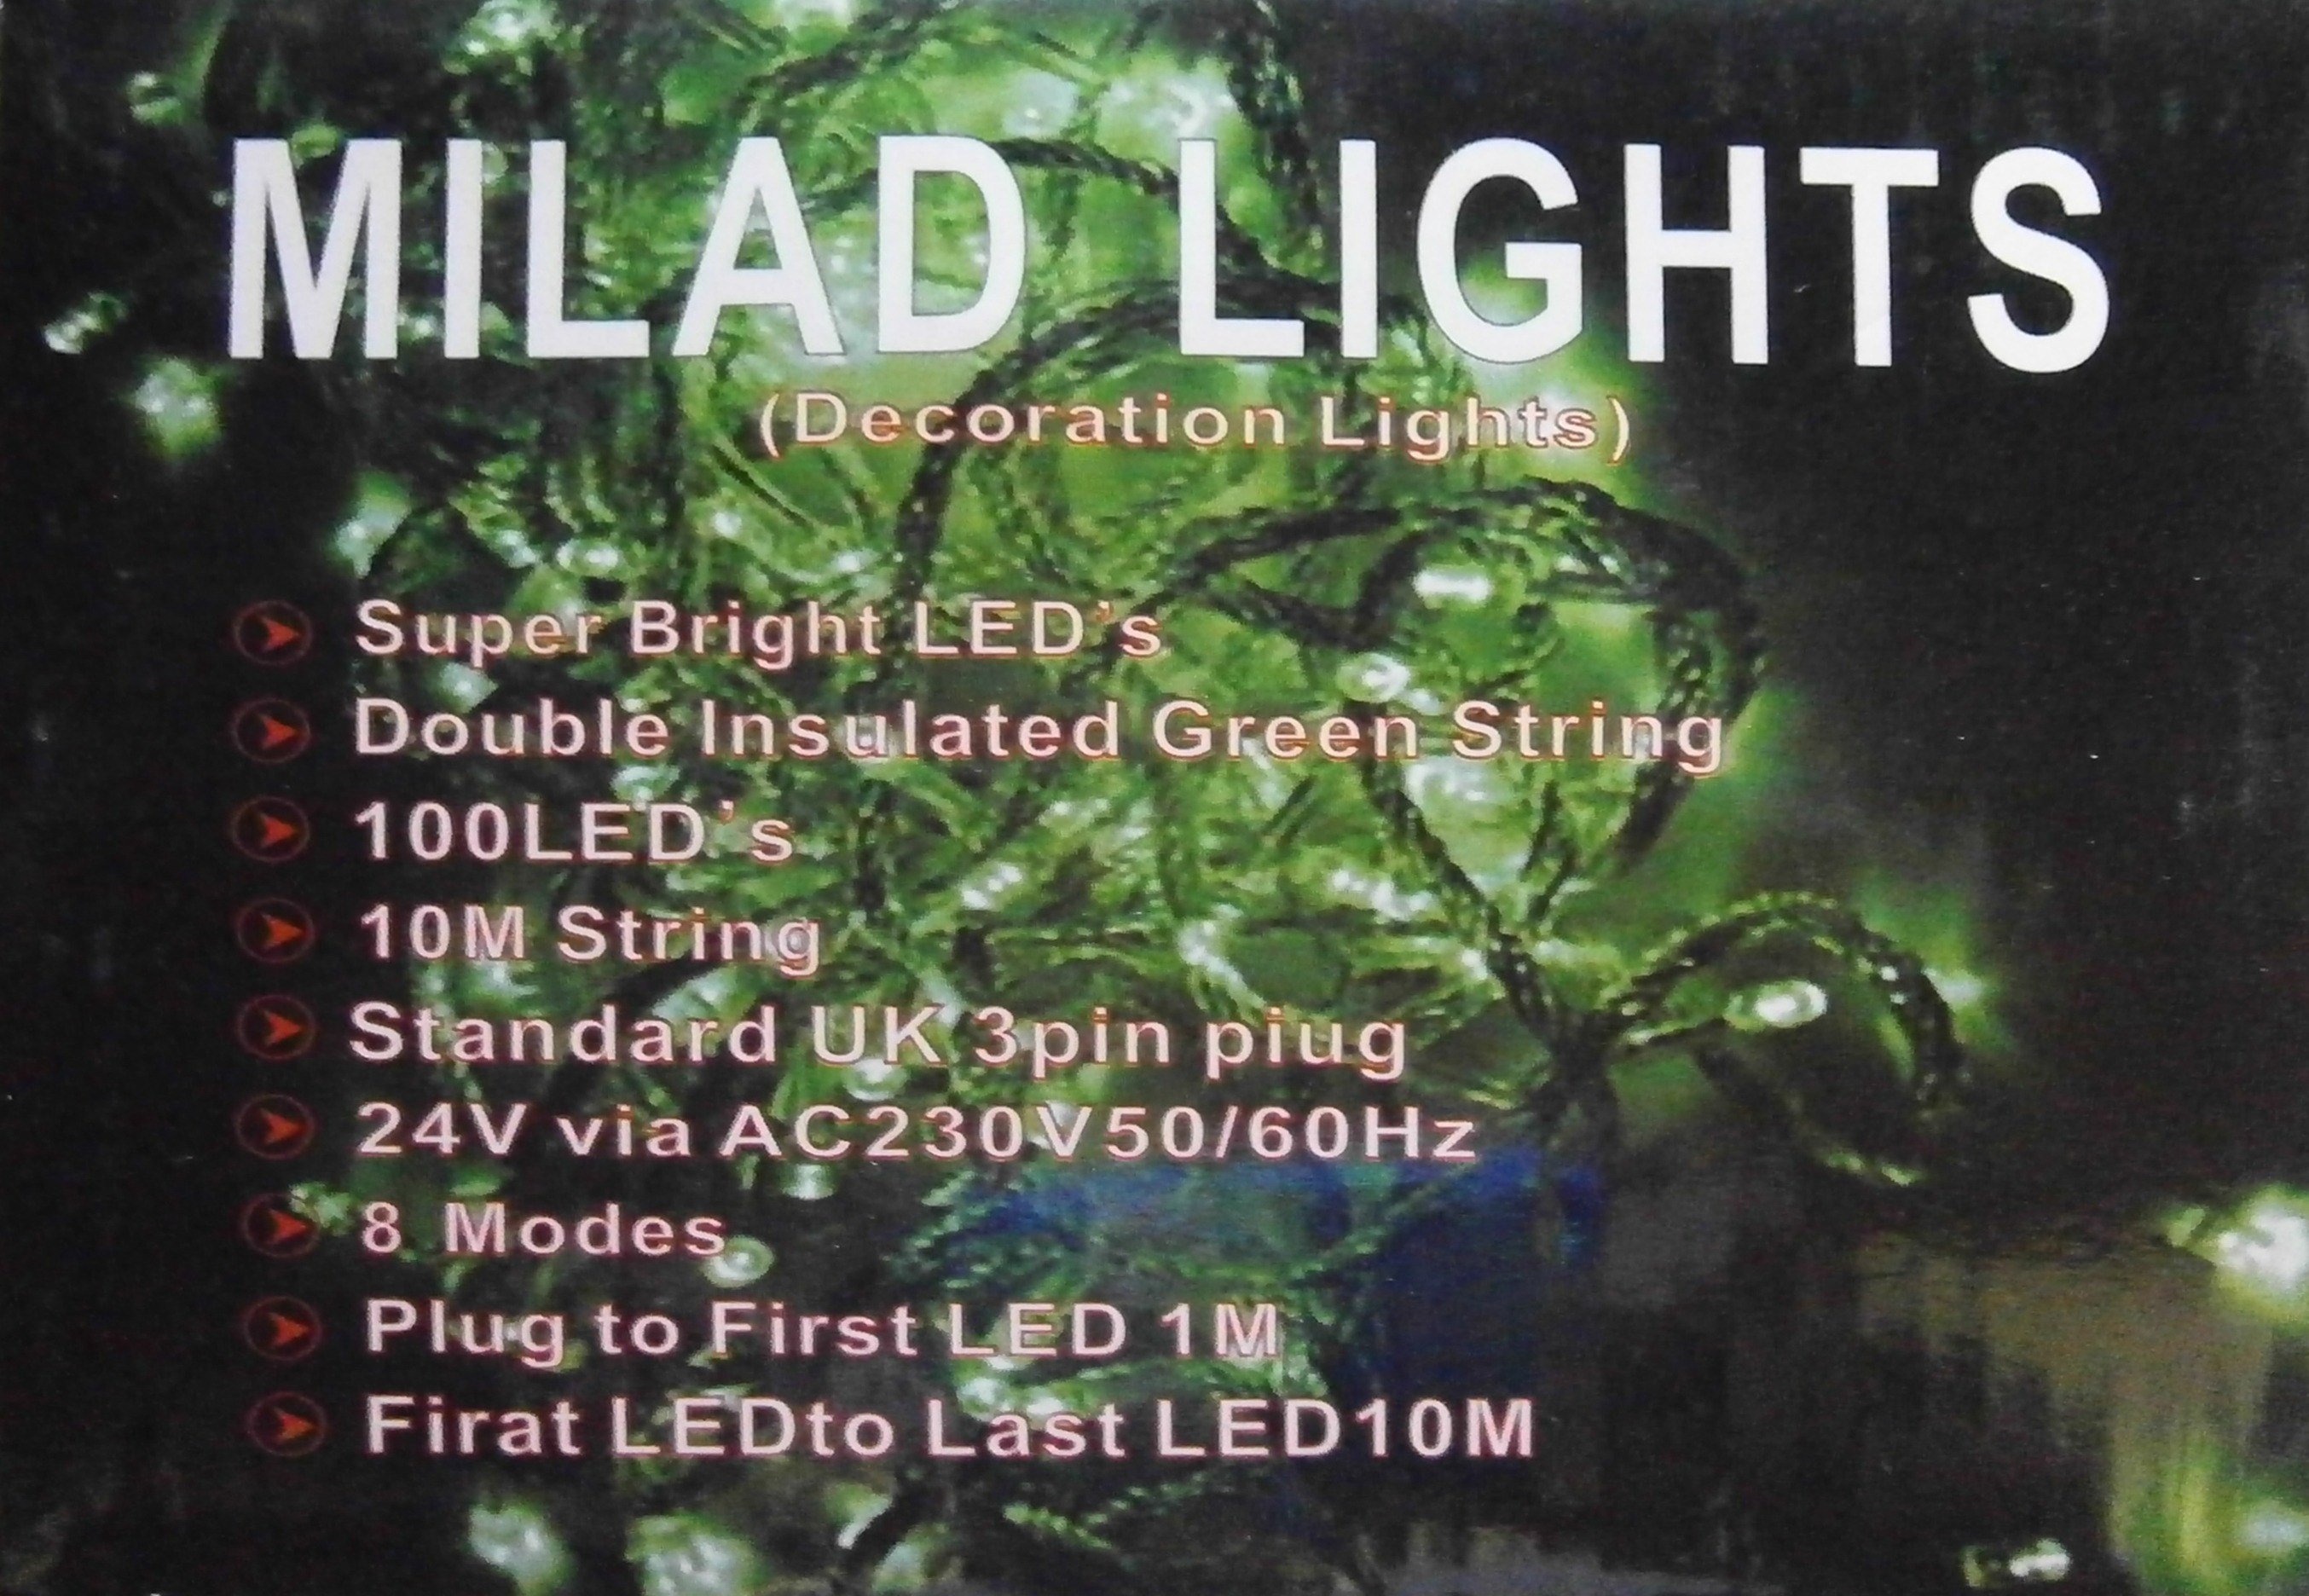 A 100 Multi Coloured Led Milad Lights